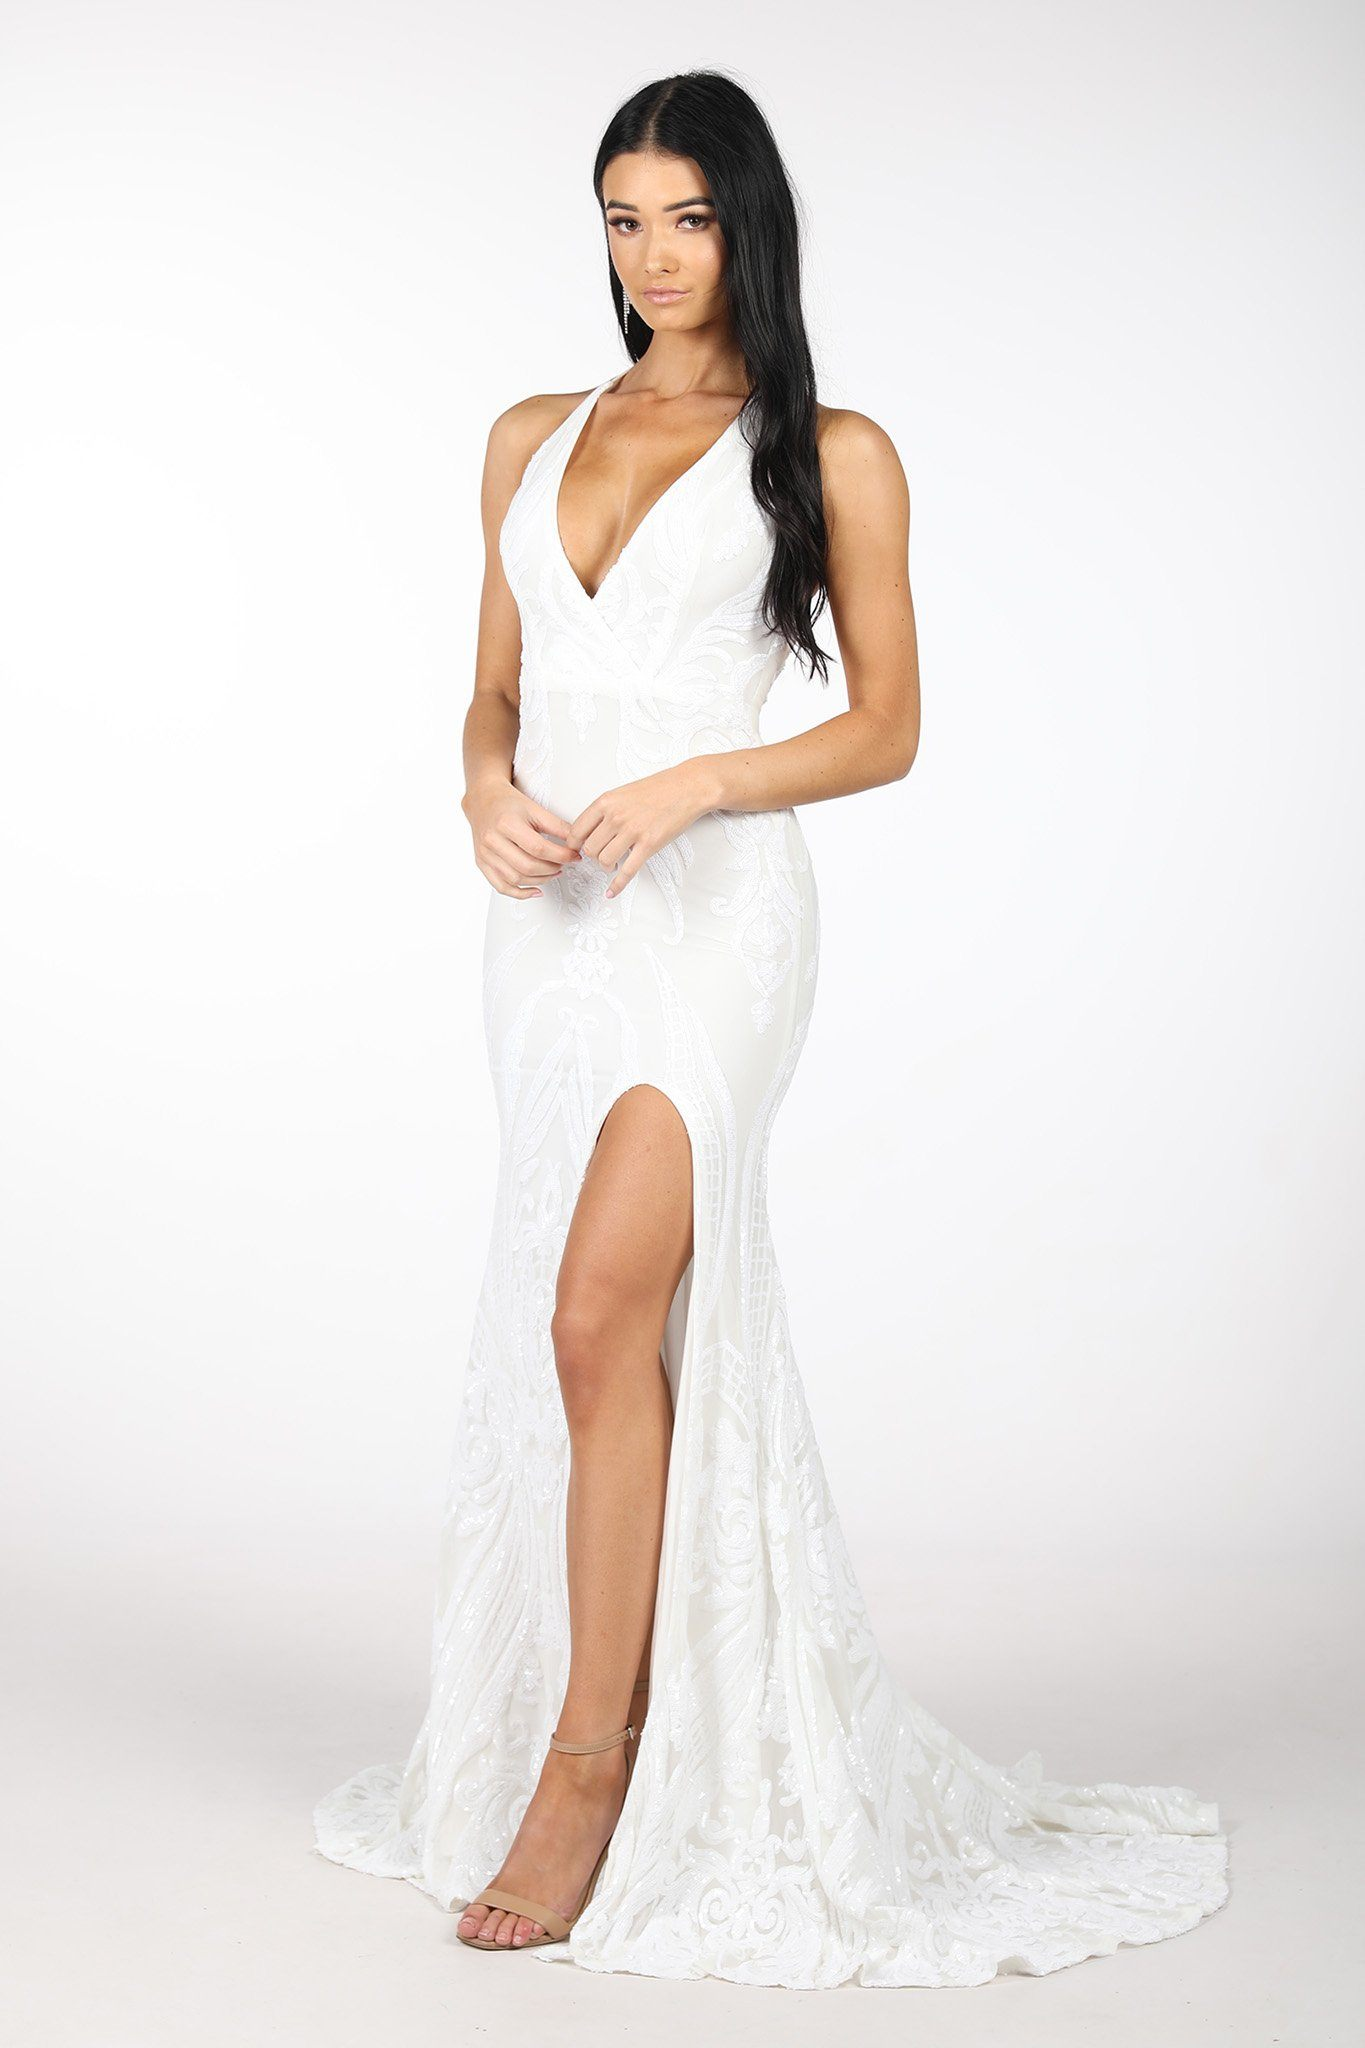 Ivory White Full Length Evening Pattern Sequin Gown with White Underlay, V neckline, Criss-cross Straps on Open Back, Thigh-high Side Slit, Fit and Flare Silhouette and Sweep Train